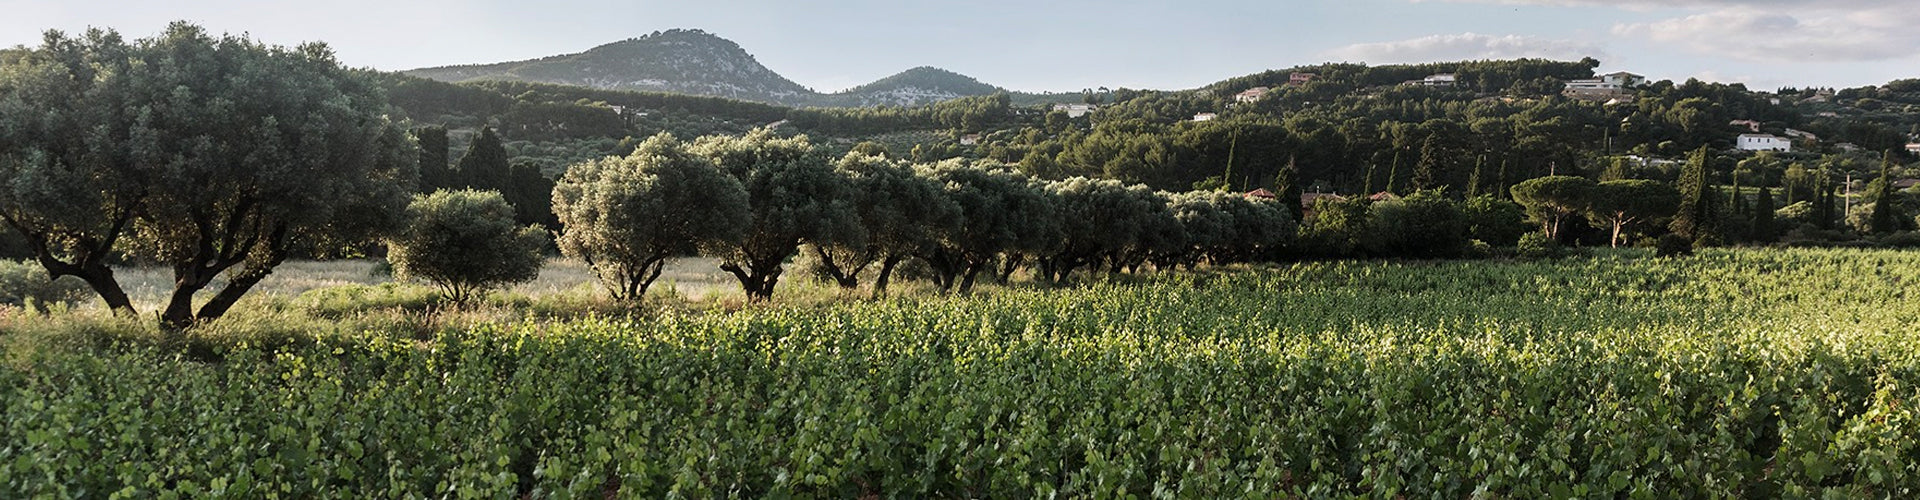 Domaine de Terrebrune Vineyards in Bandol, Provence